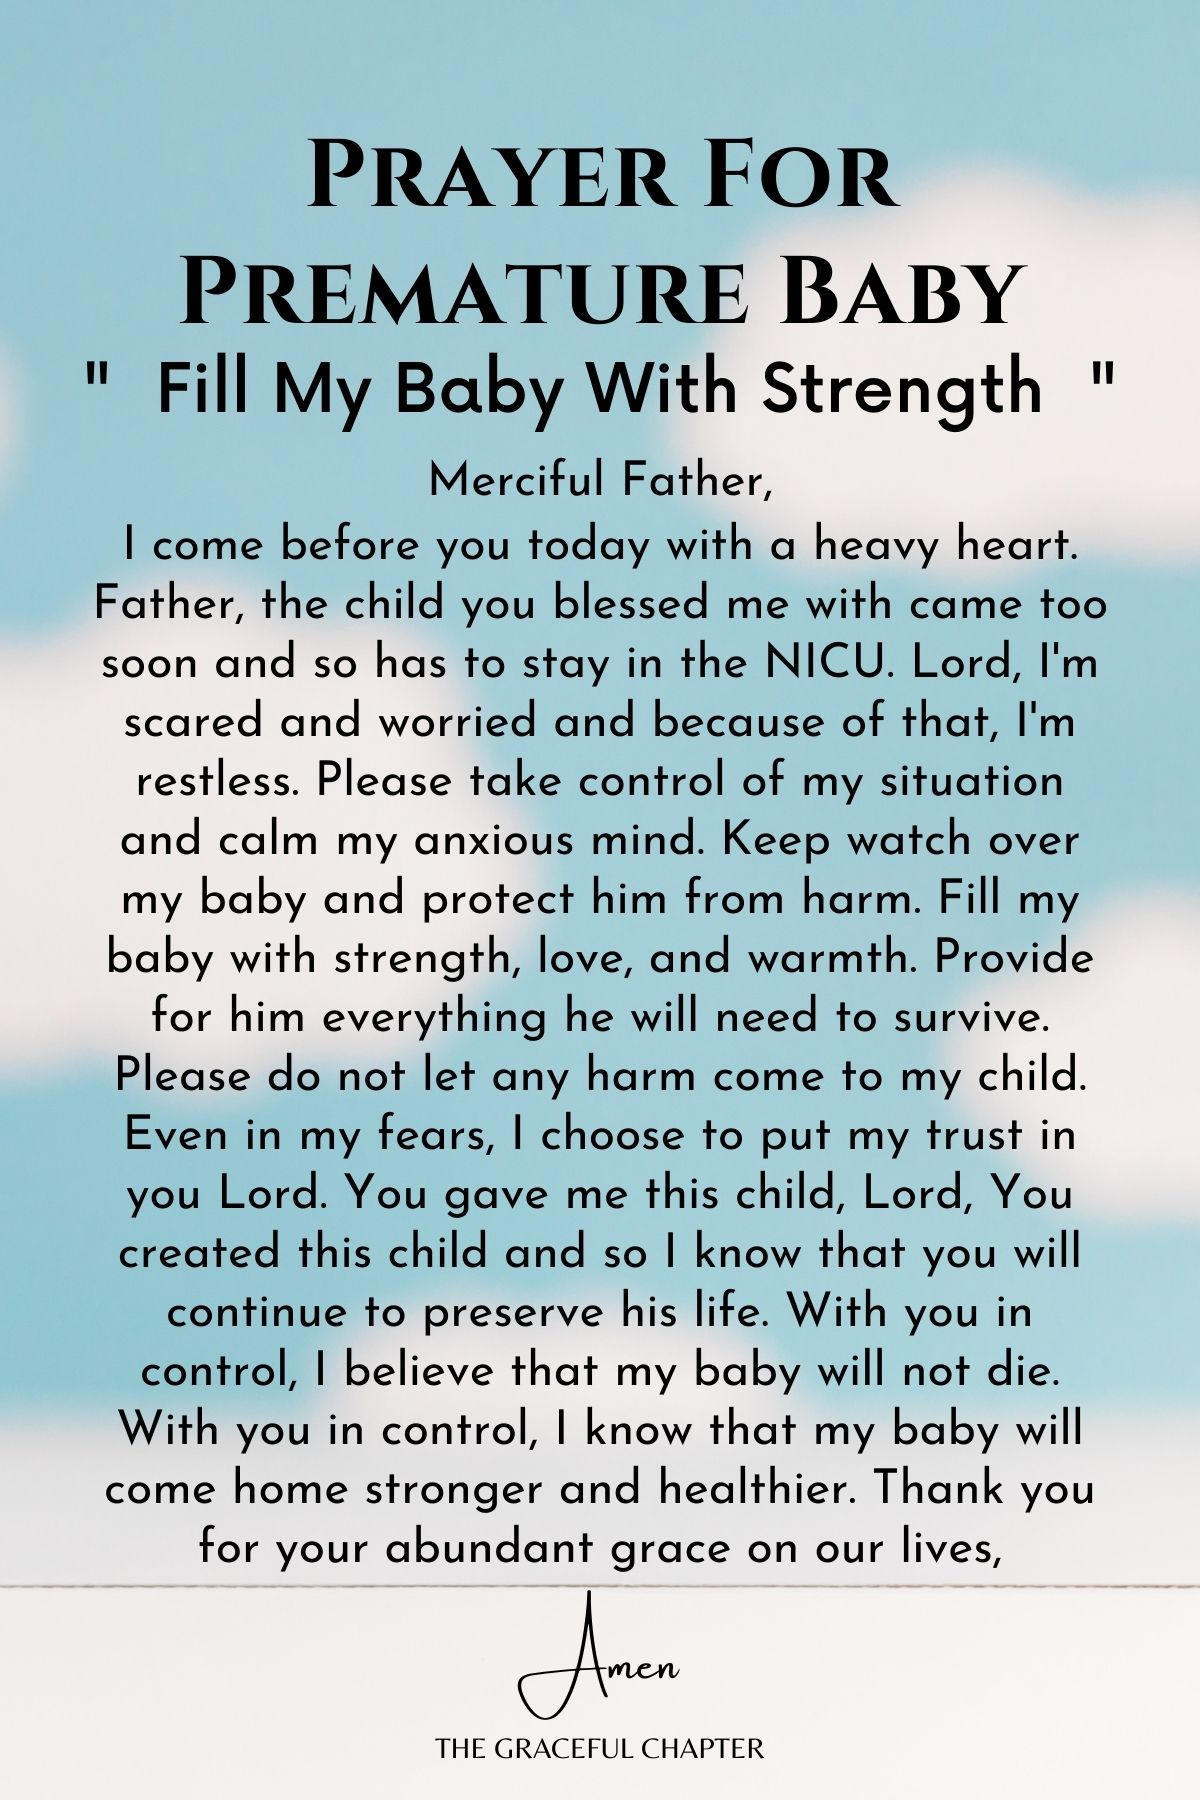 Fill my baby with strength  - prayer for preemie baby